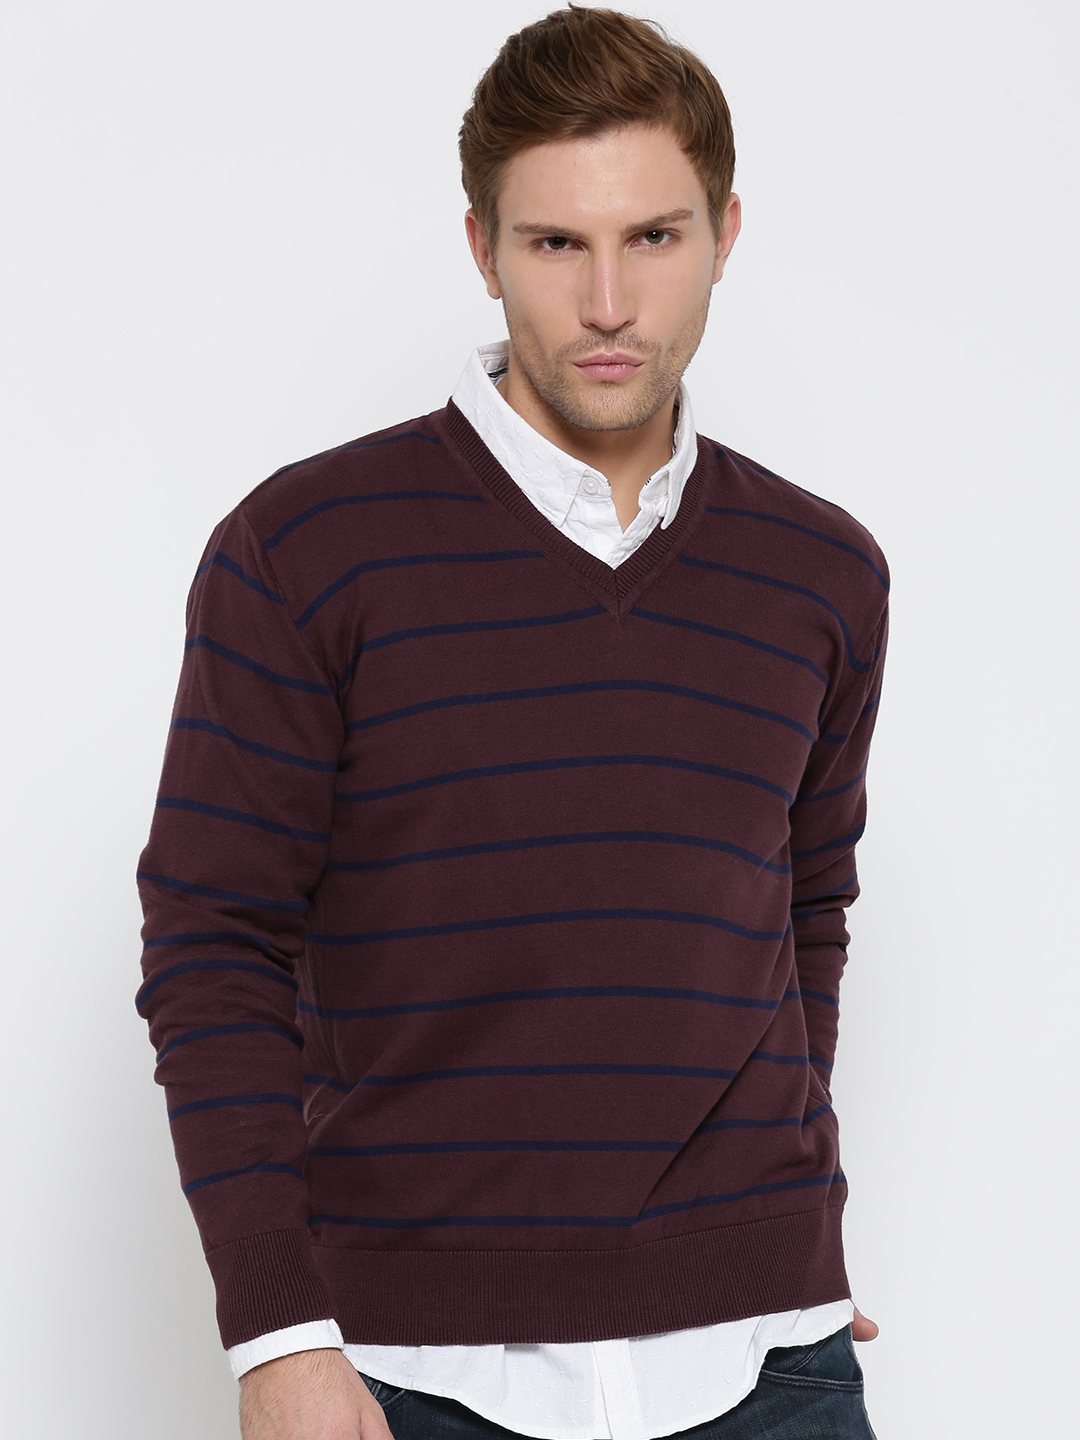 Buy Locomotive Burgundy Striped Sweater - Sweaters for Men | Myntra